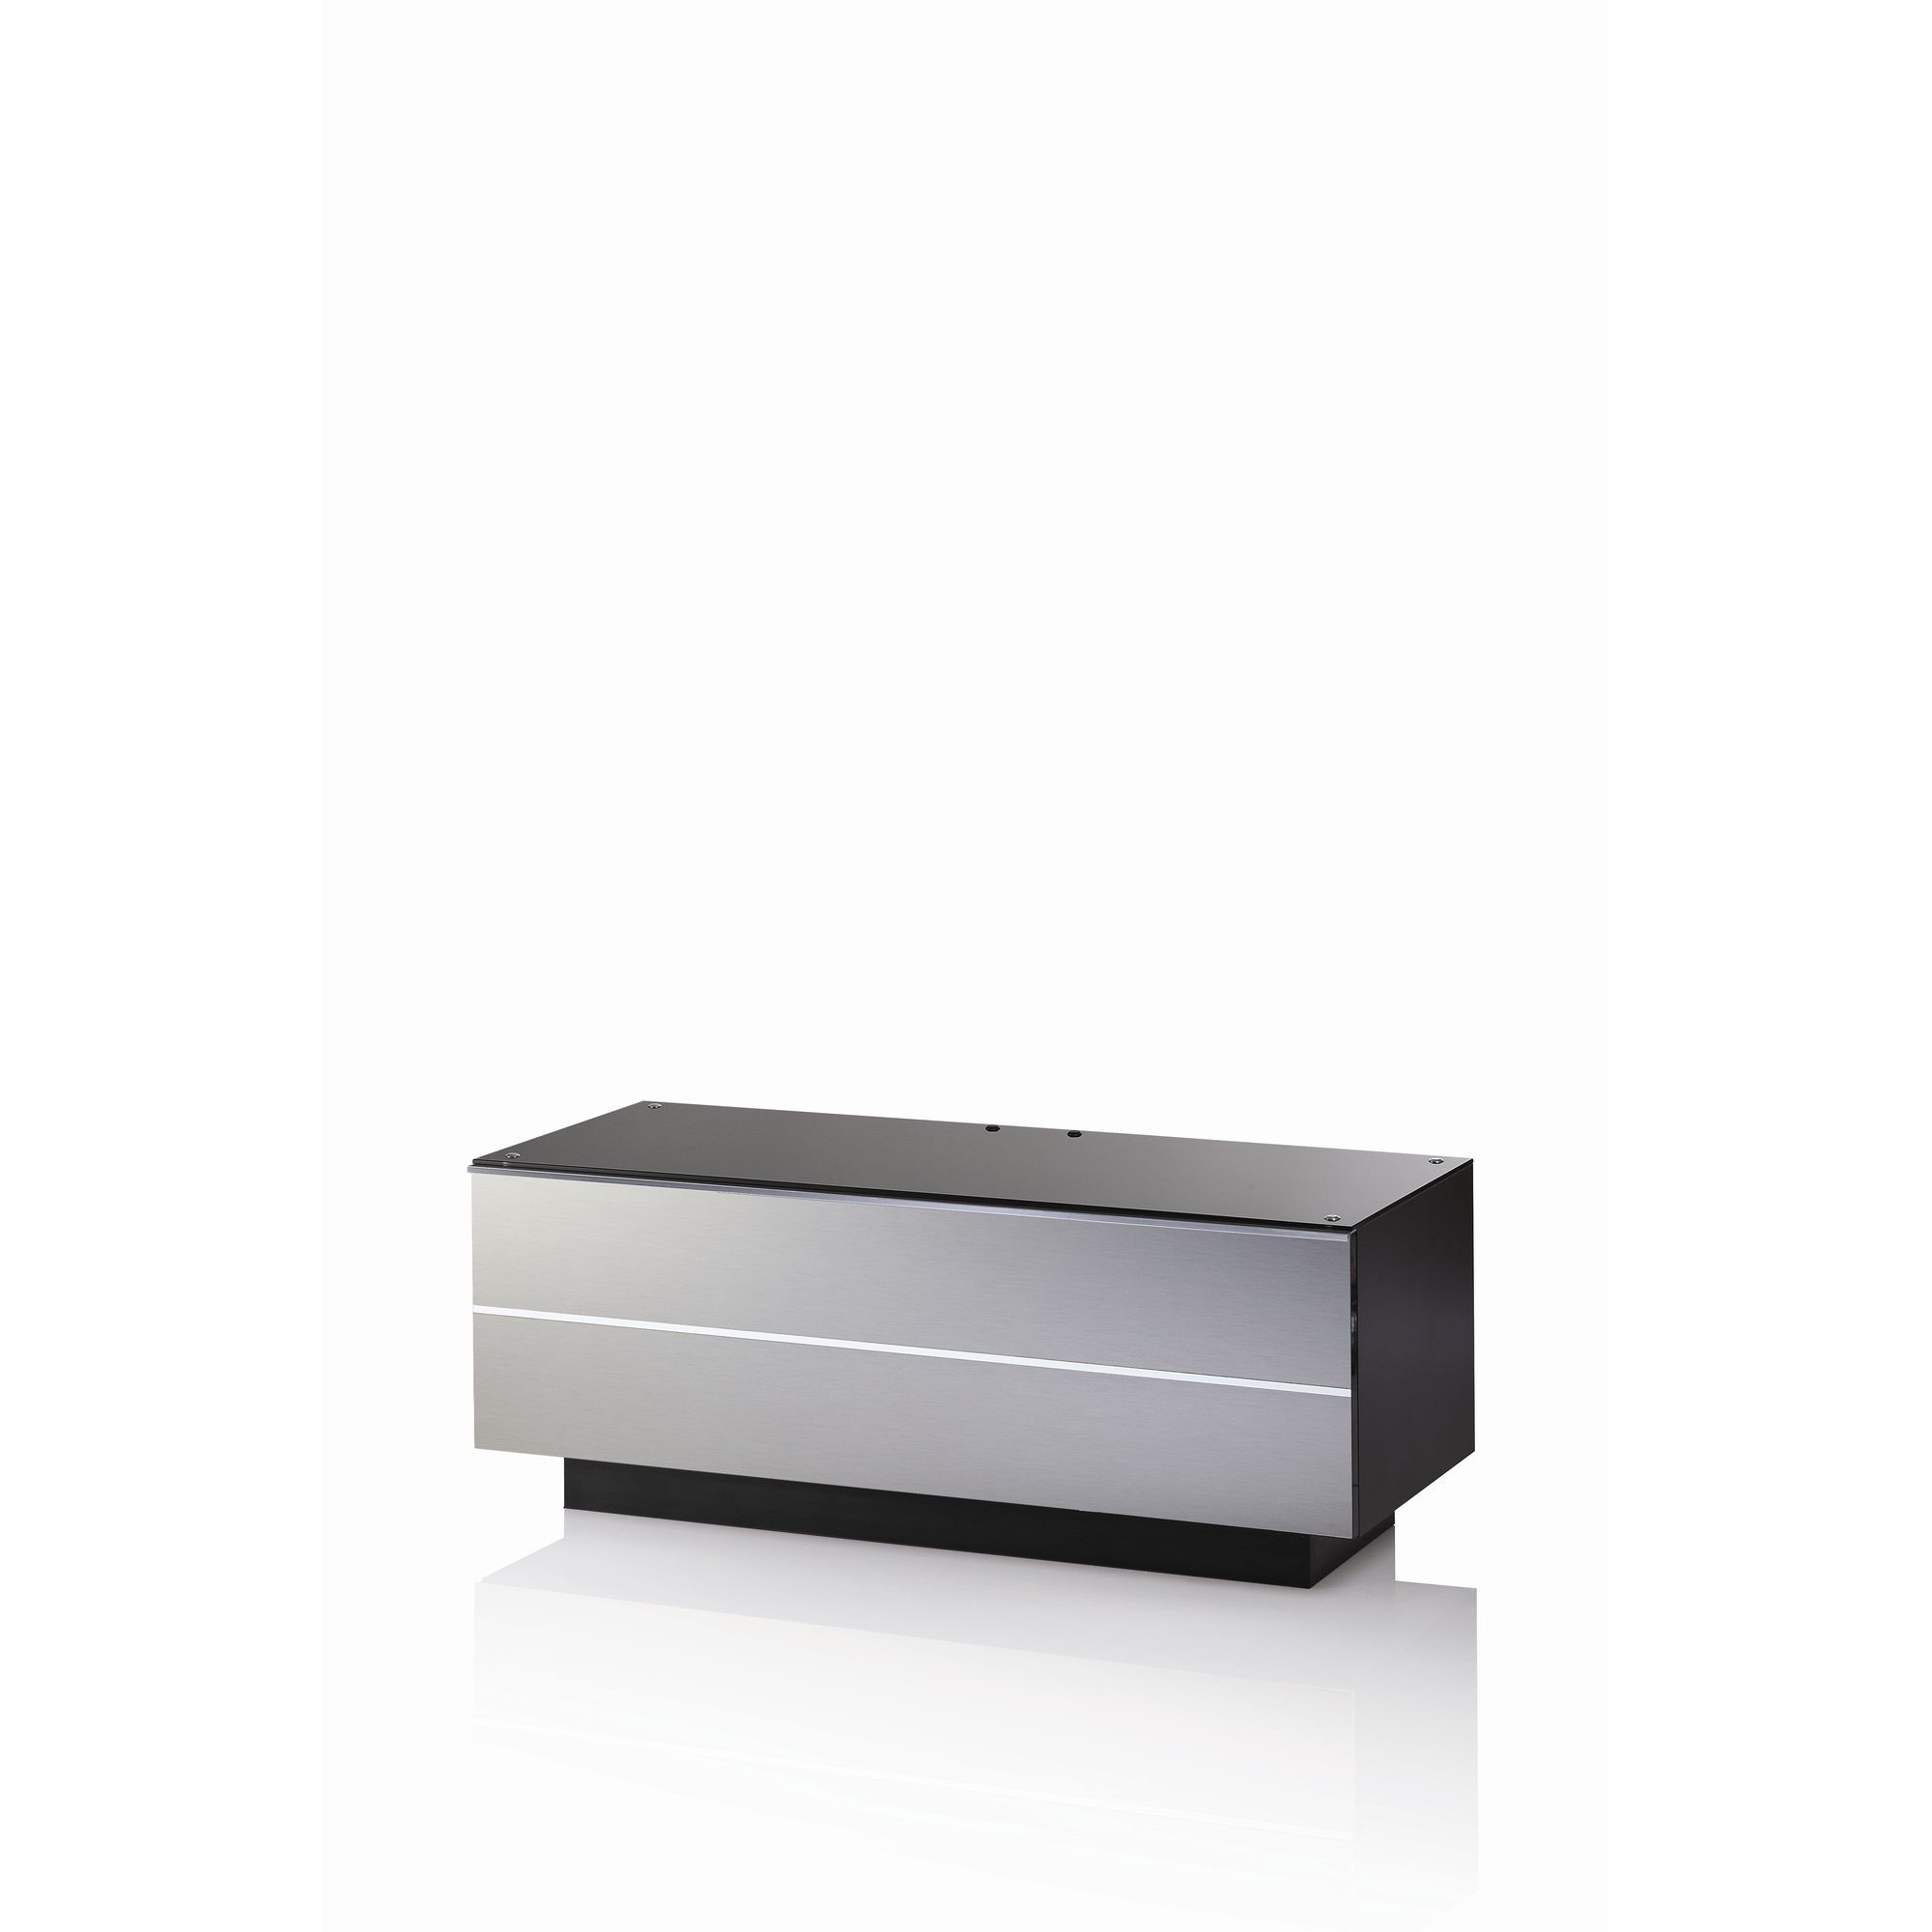 UK-CF G Series GS TV Stand - 110cm - Inox at Tesco Direct